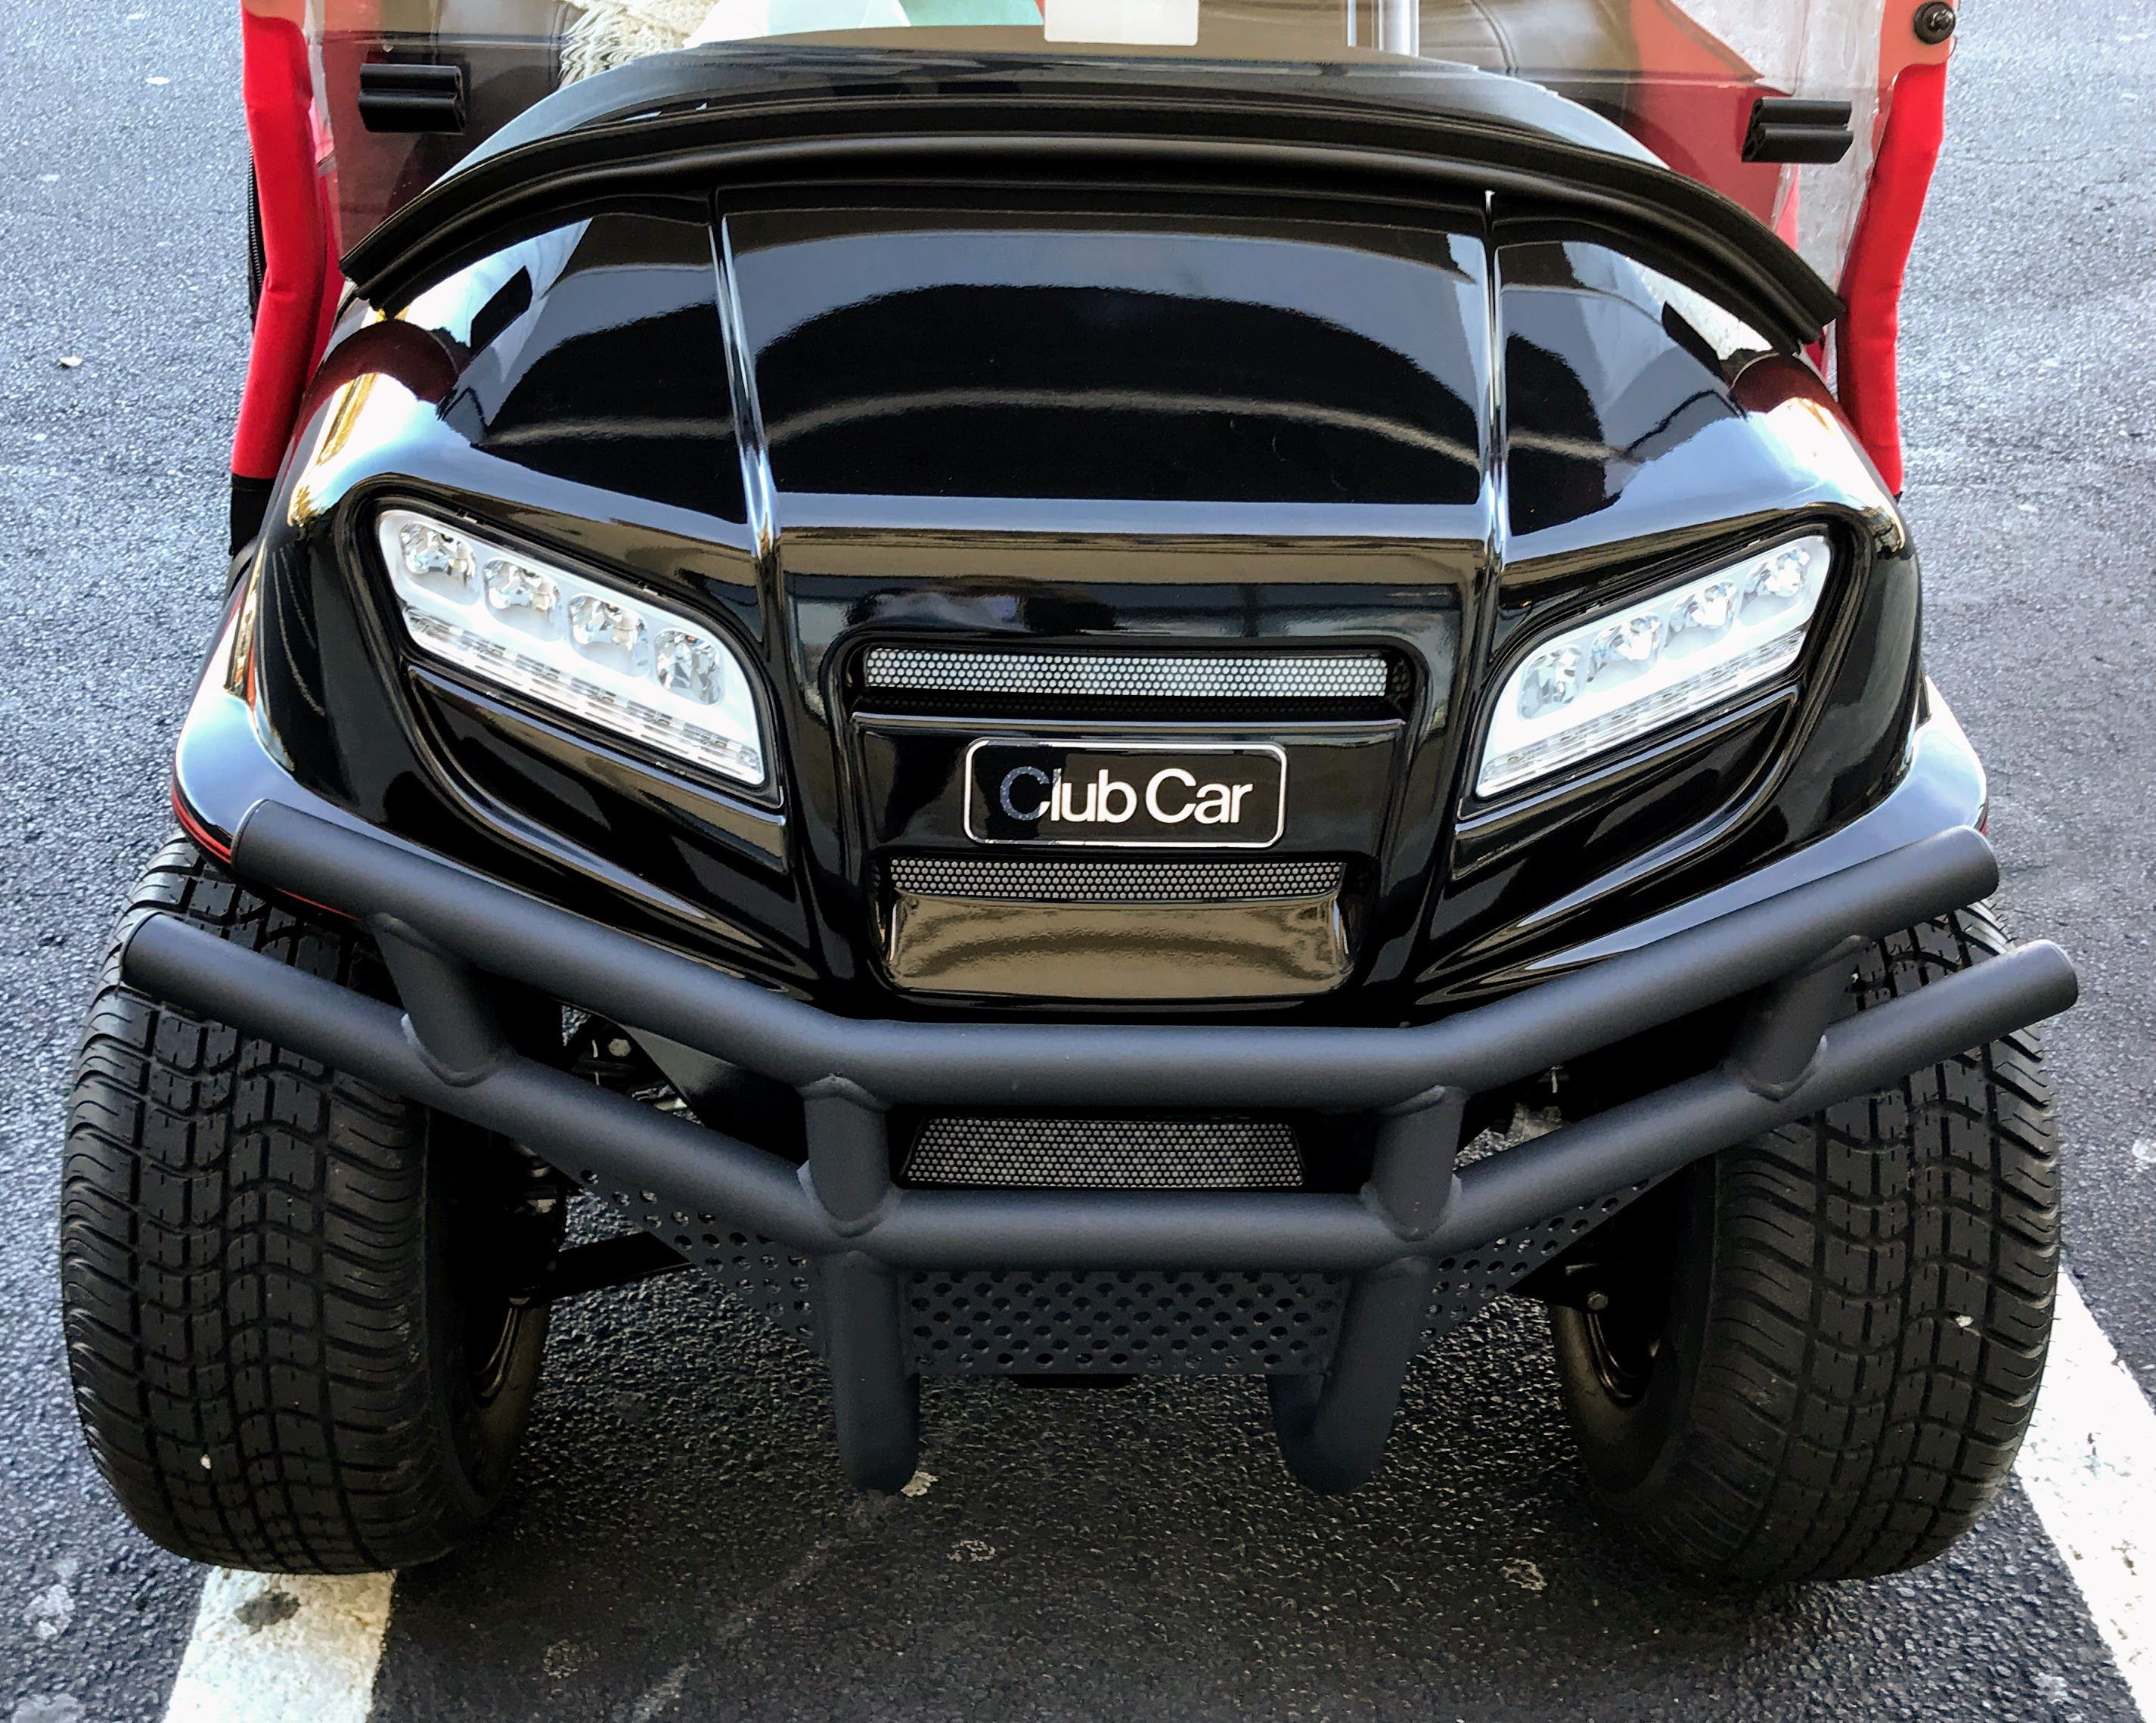 Club Car Golf Cart Accessories For Cold Customization And Comfort